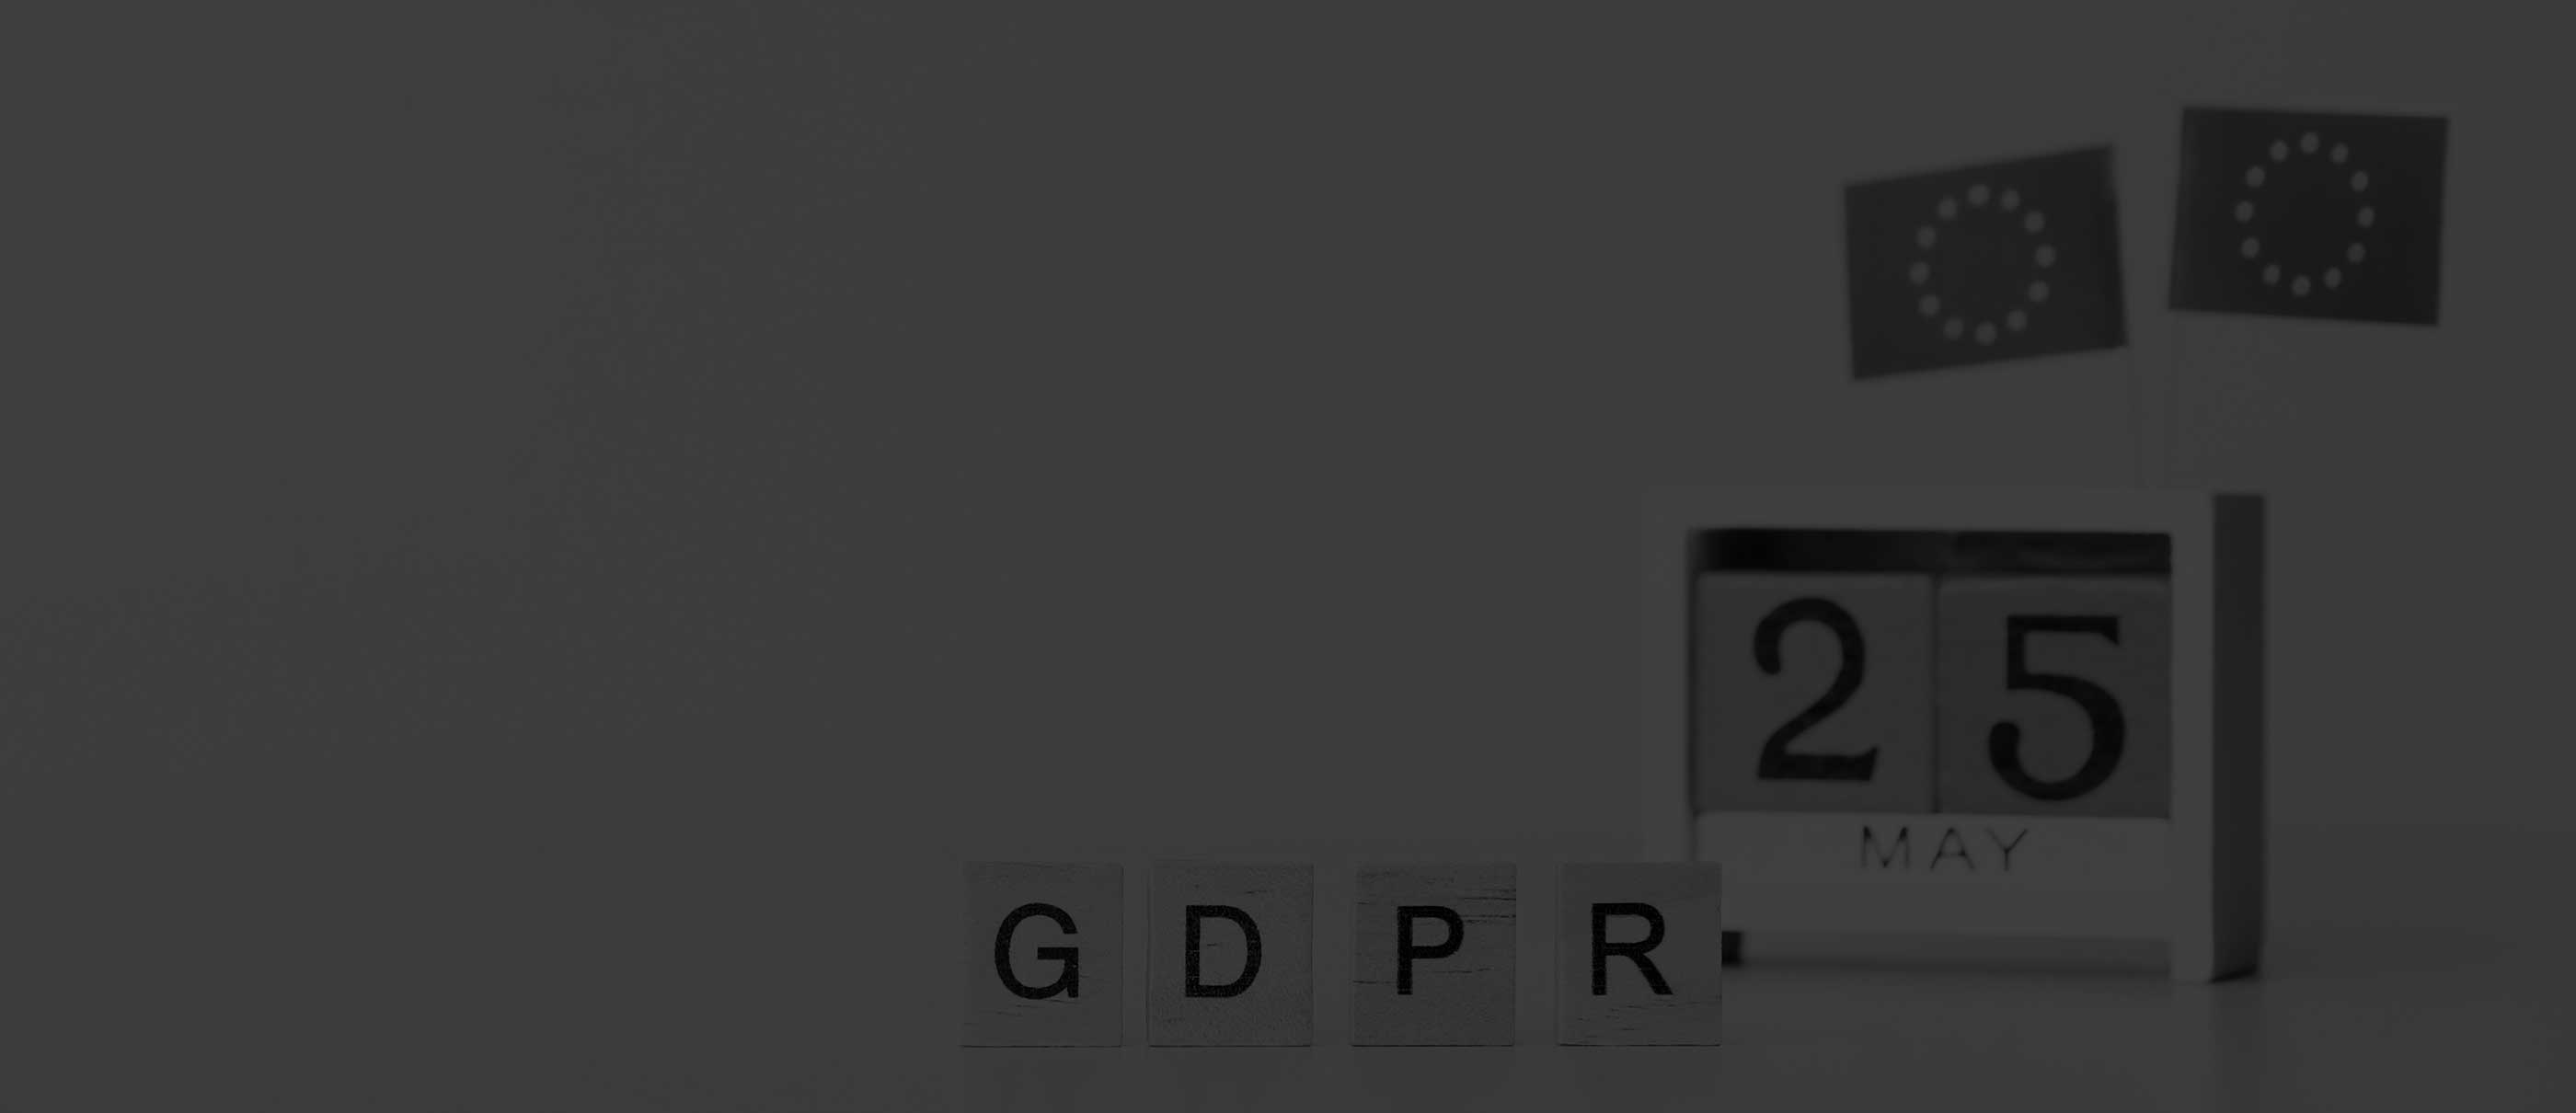 Kaleida: One Week After GDPR's Launch, Has Much Changed at All? Banner